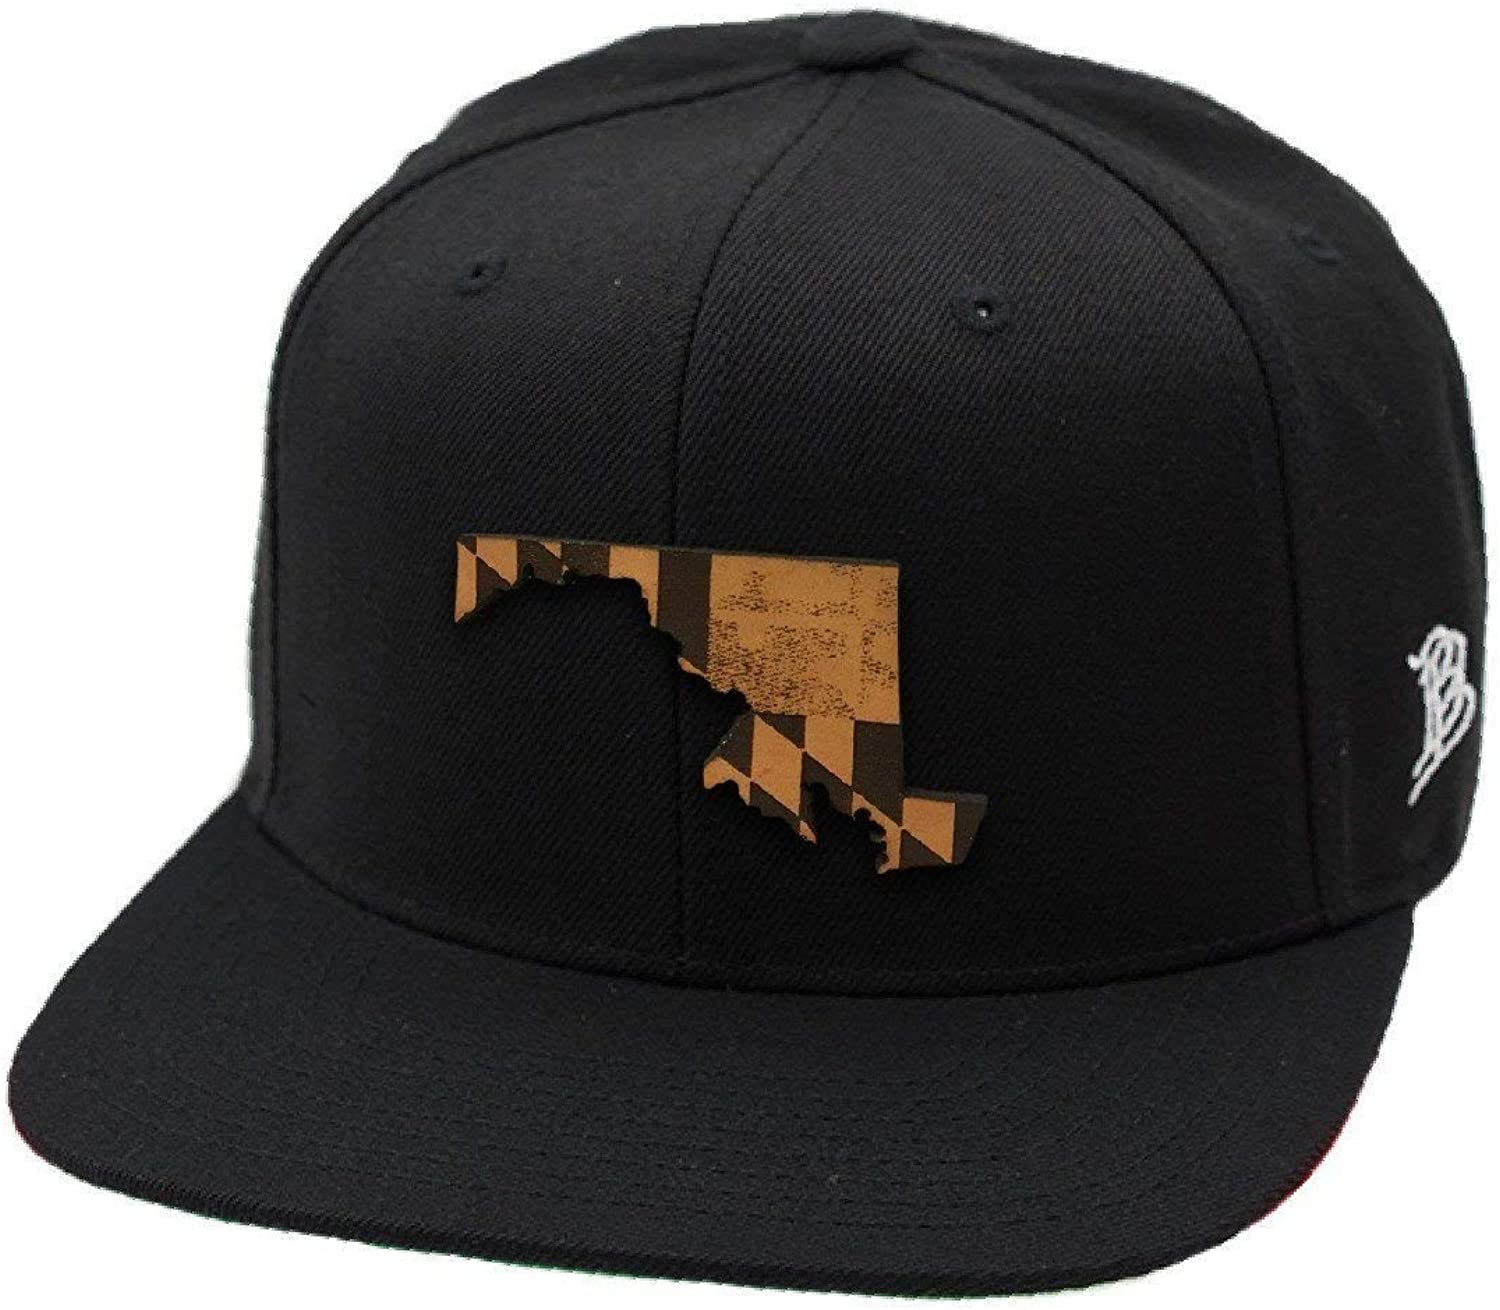 Branded Bills Maryland 'The 7' Leather Patch Snapback Hat